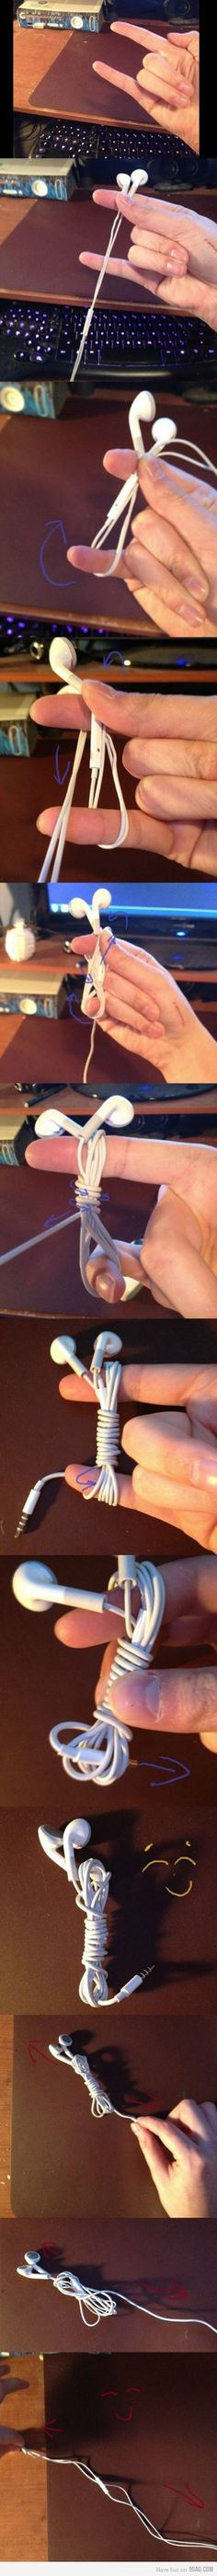 How to tie your earbuds so that it will not be tangled when you have to use it again :)